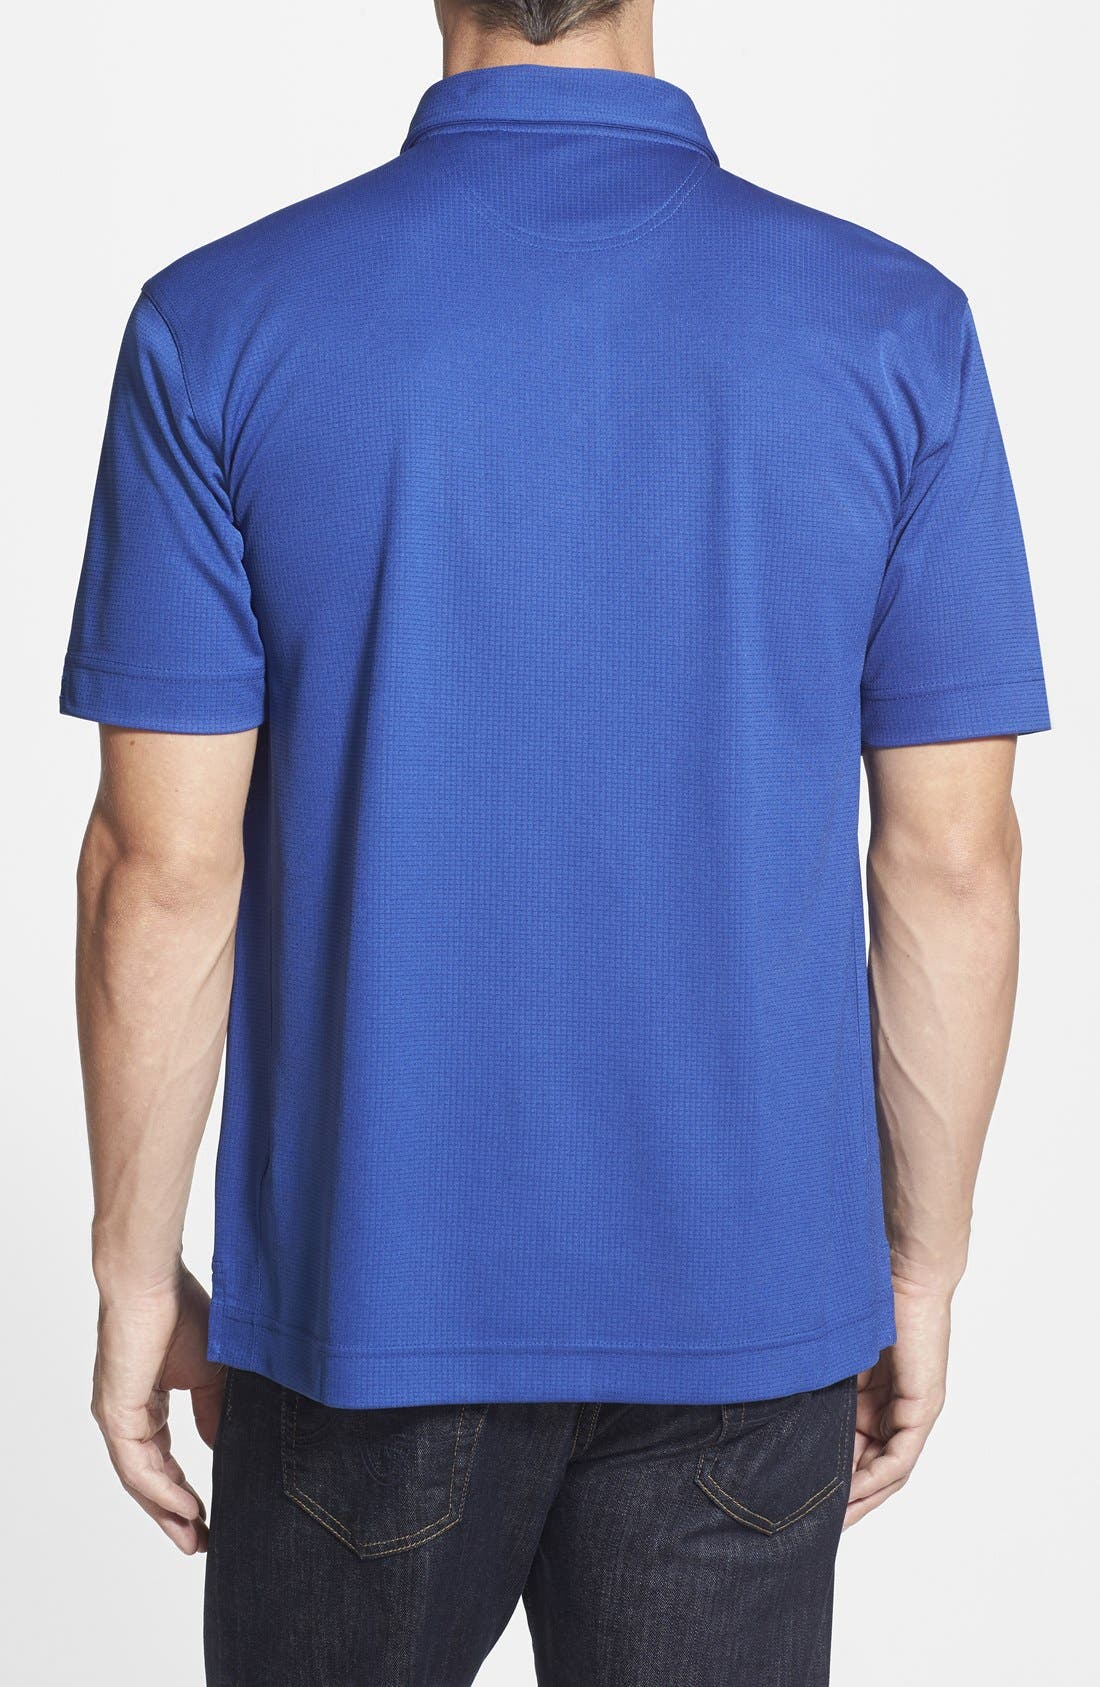 Indianapolis Colts - Genre DryTec Moisture Wicking Polo,                             Alternate thumbnail 4, color,